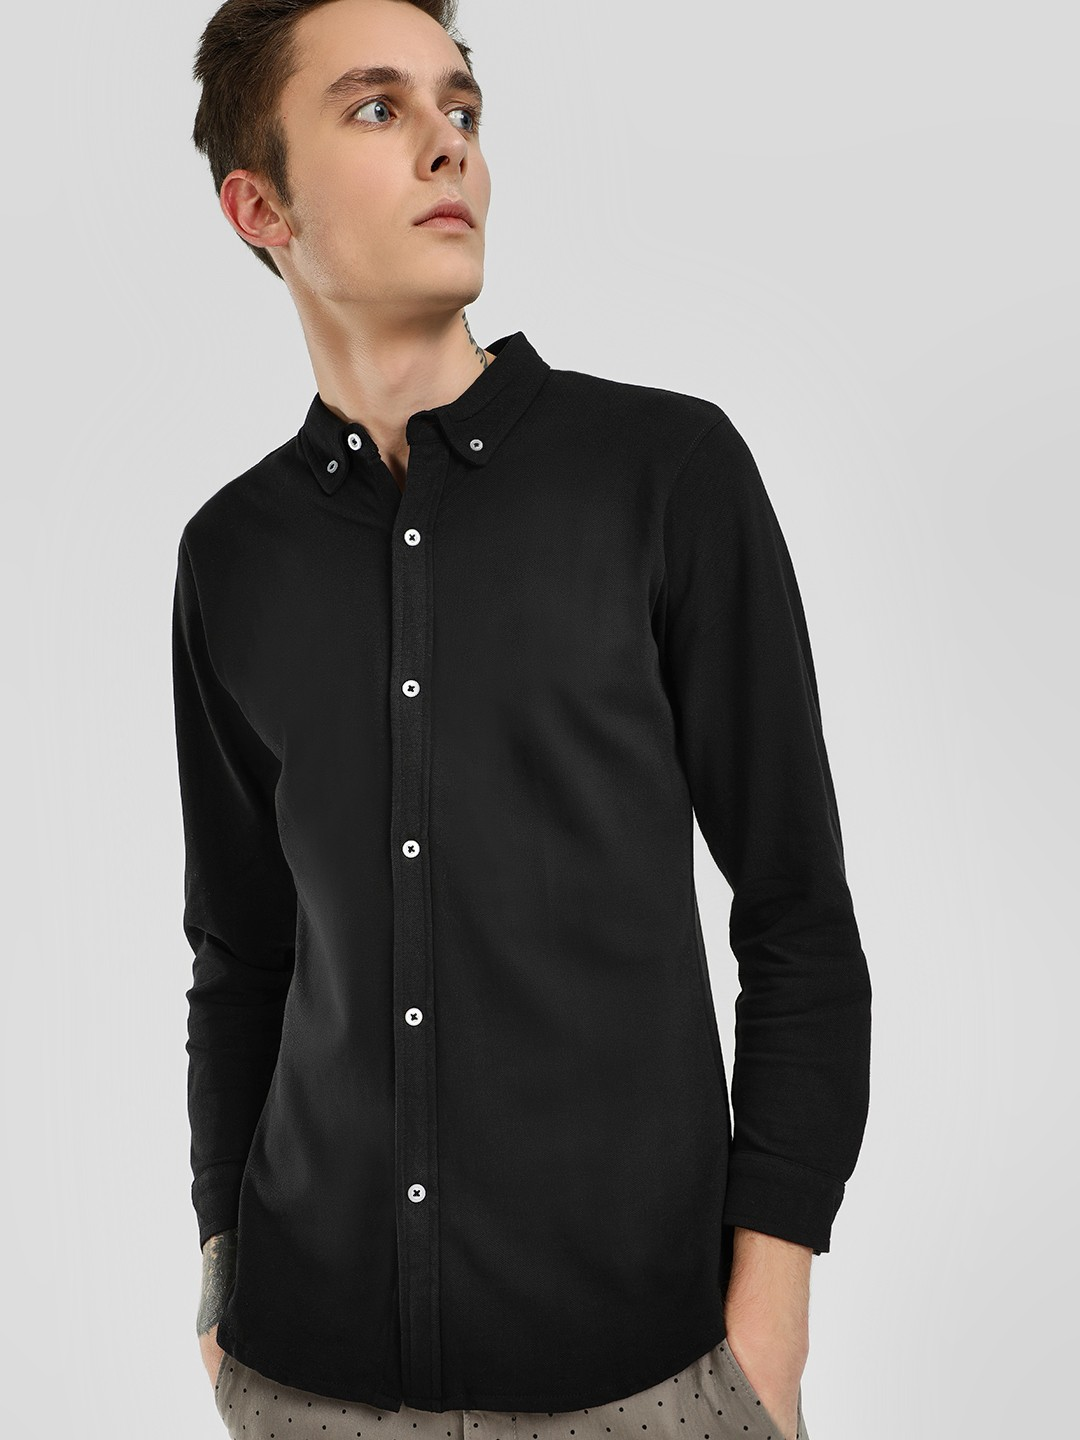 Garcon Black Contrast Button Down Knitted Shirt 1